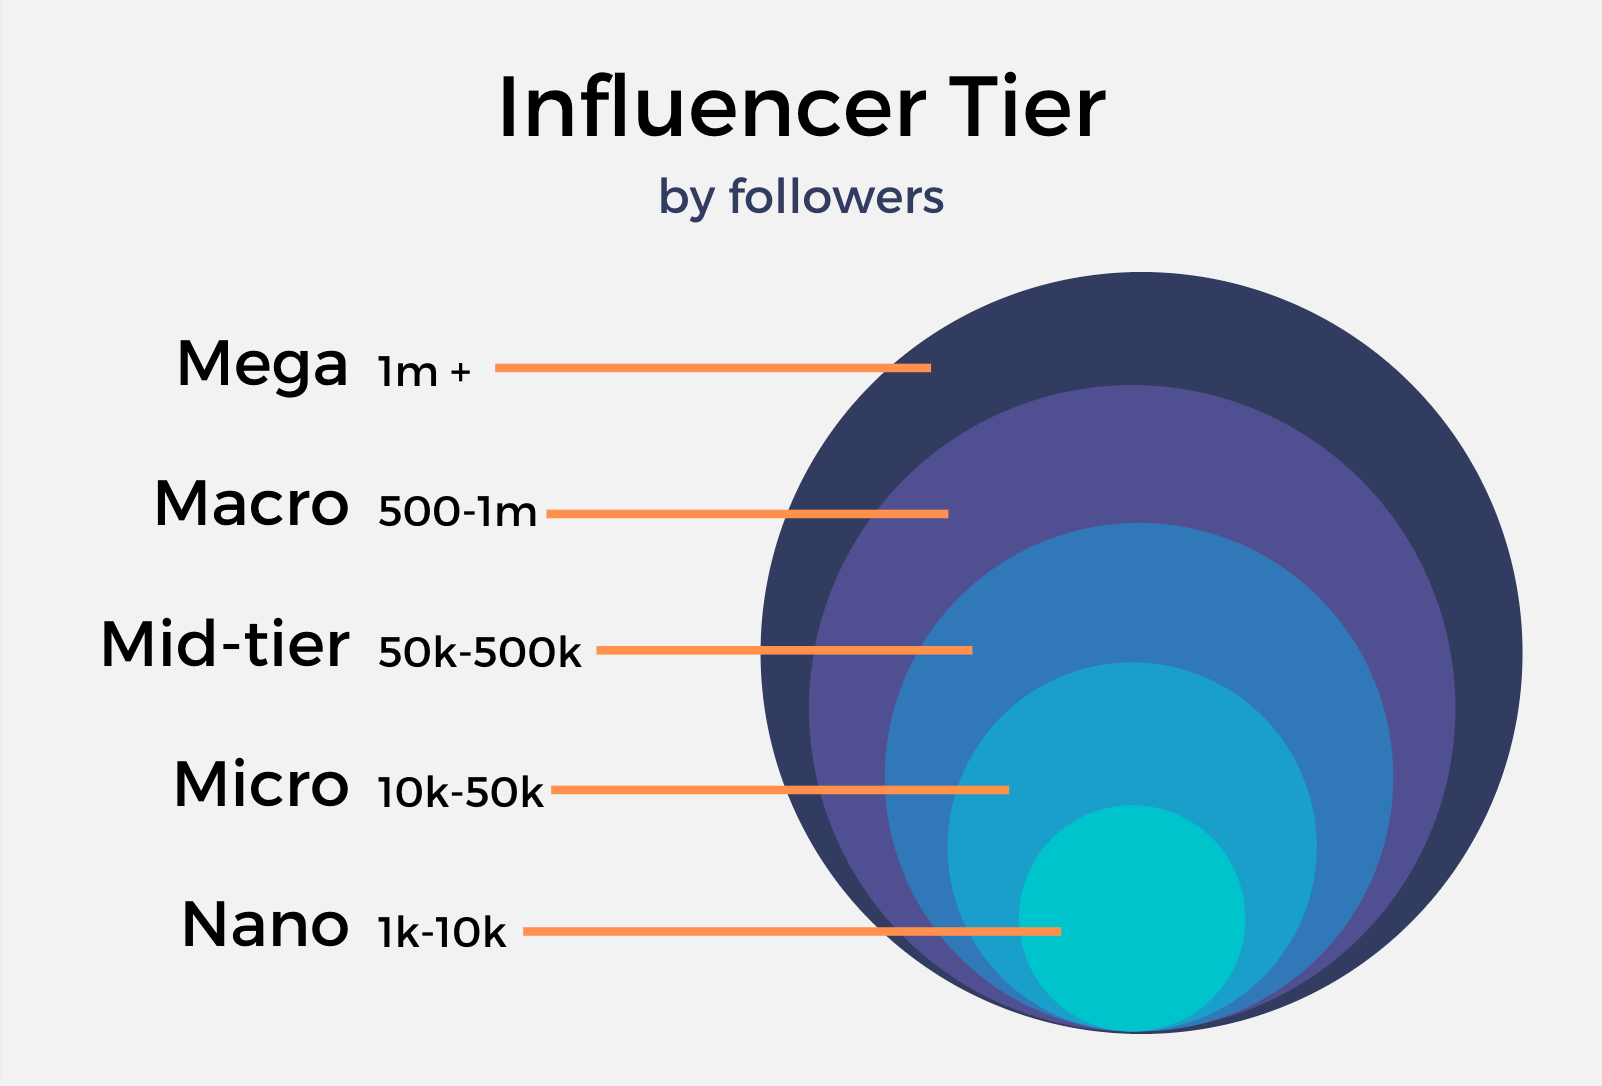 Influencer Tier by Followers (Credit to SocialBook)